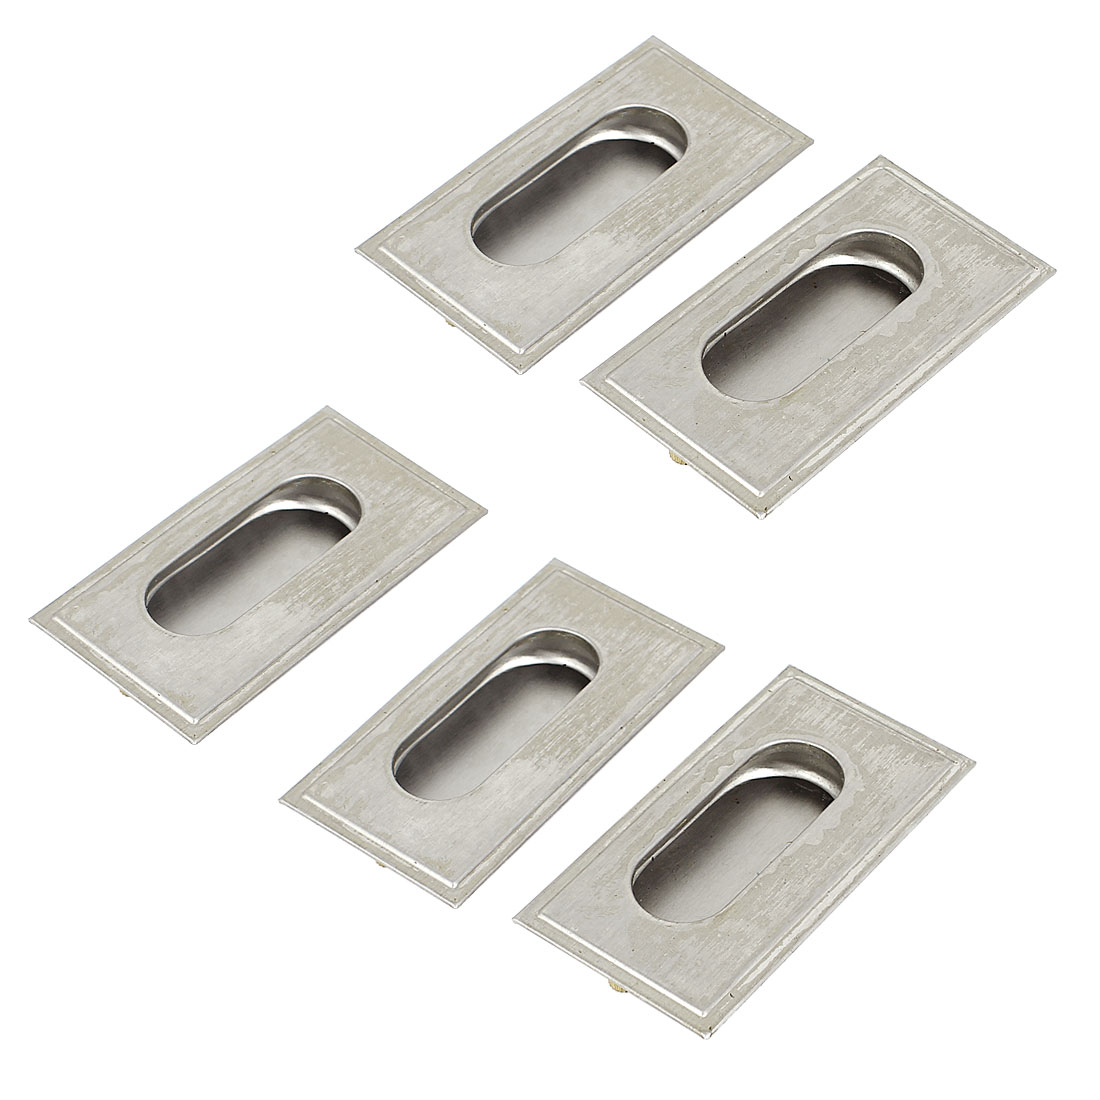 Door Drawer 80mm x 42mm Rectangle Recessed Flush Sliding Pull Handle 5 Pcs